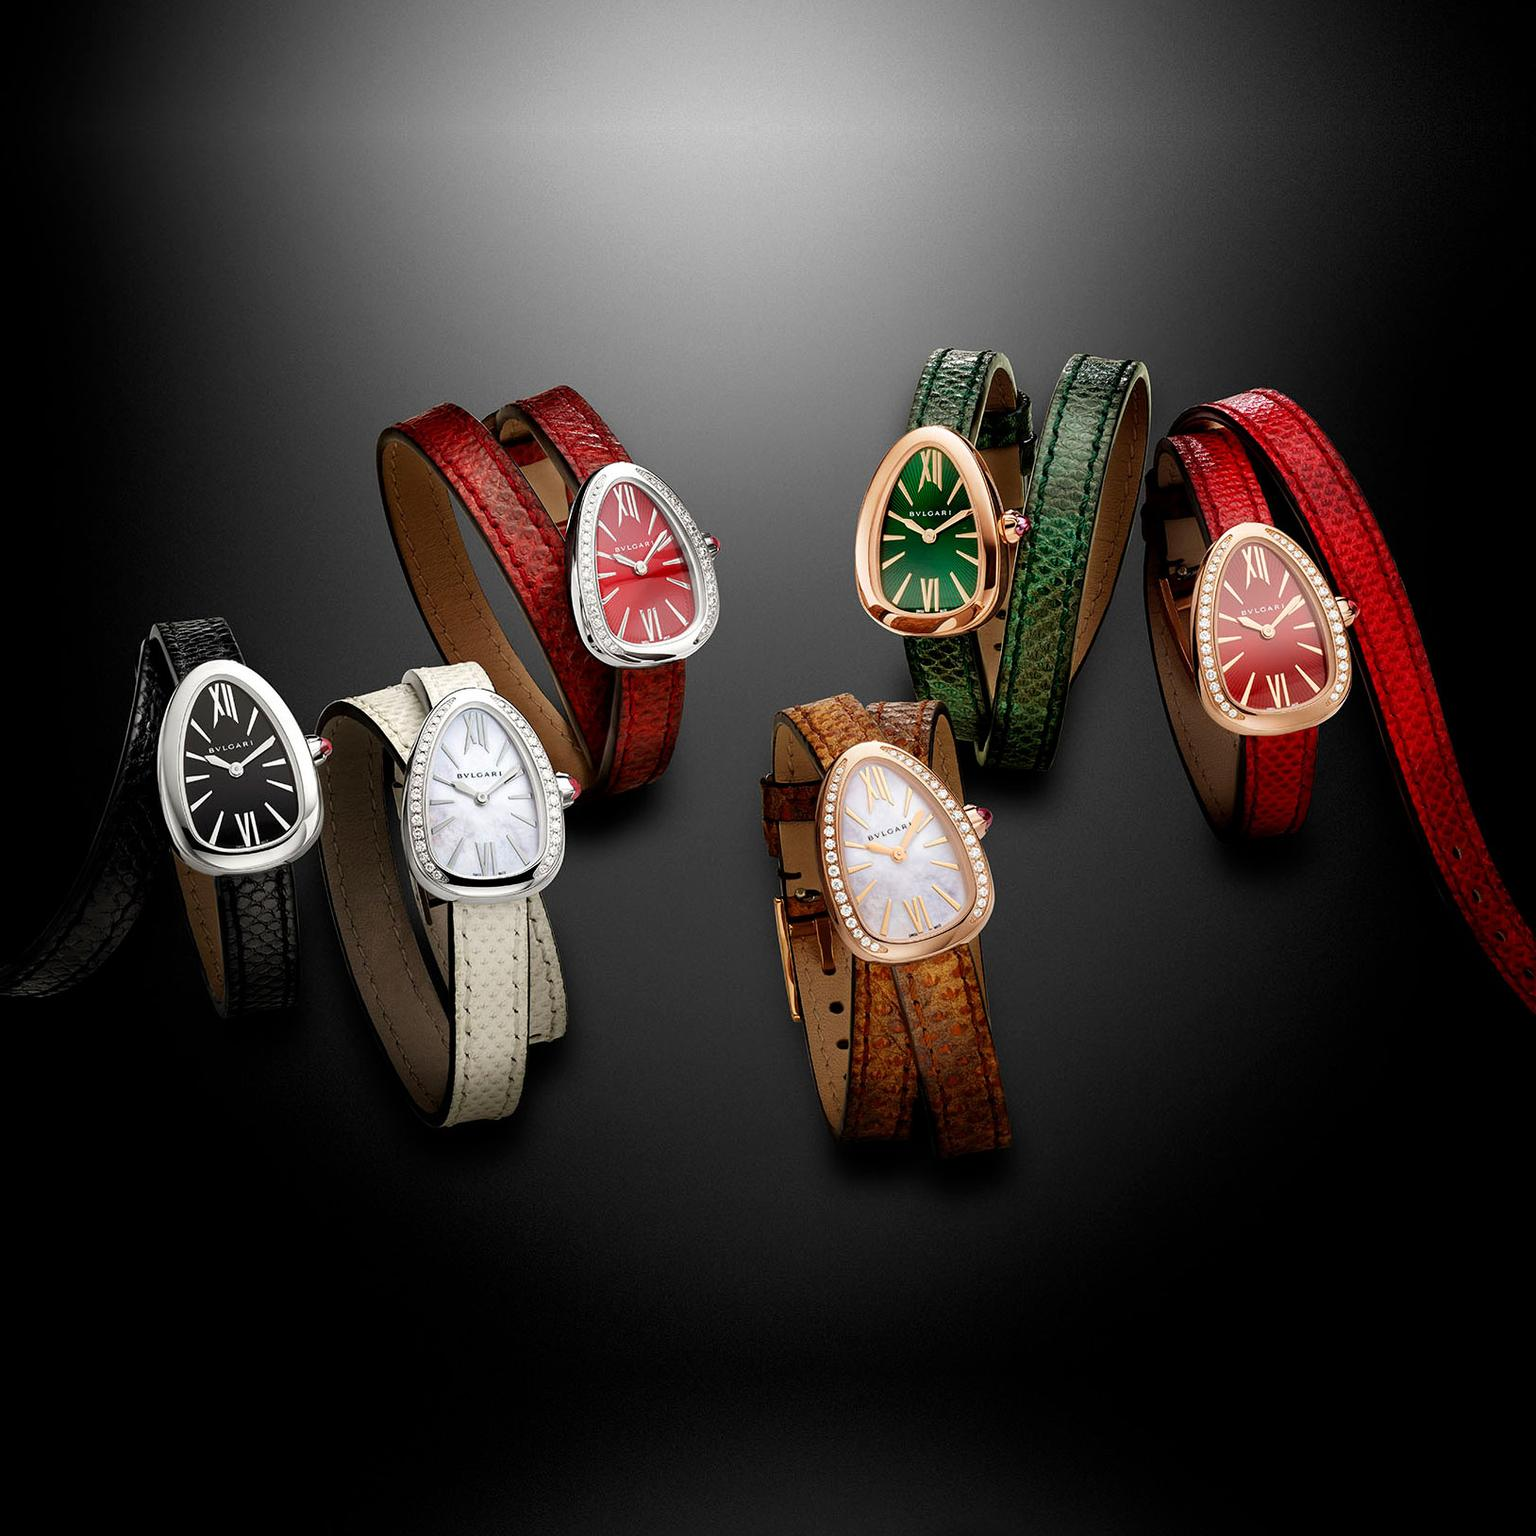 Bulgari Serpenti Karung watch collection